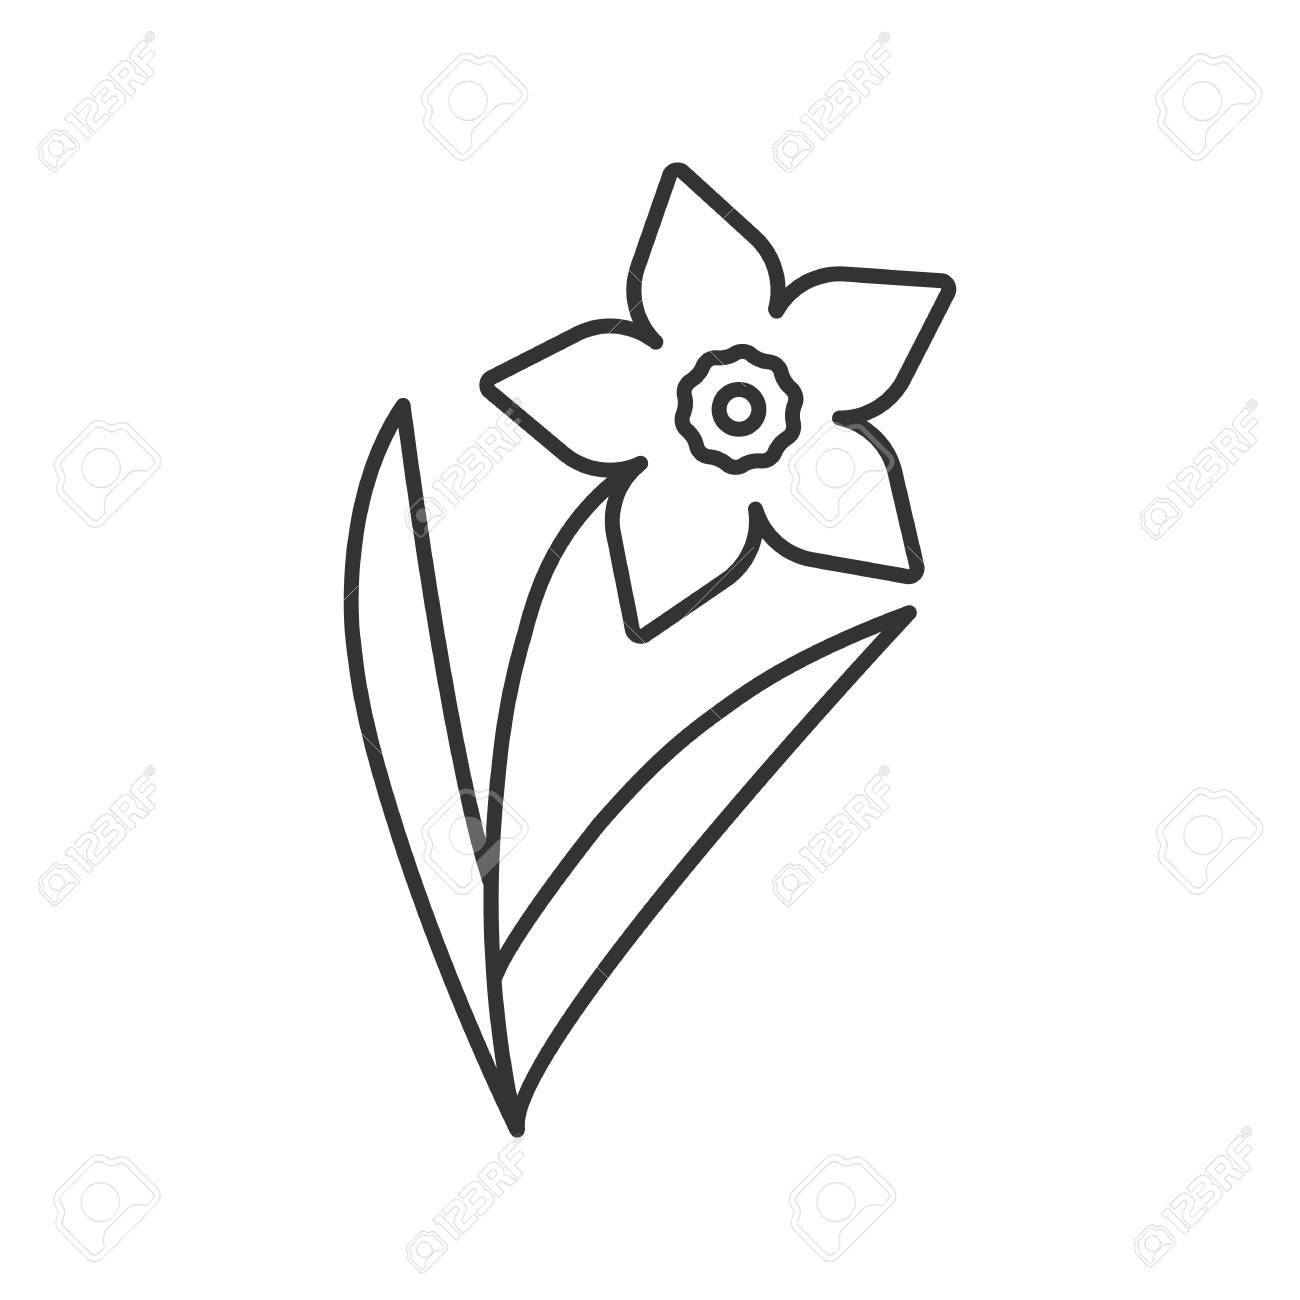 Narcissus jonquil linear icon garden spring flower thin line vector isolated outline drawing narcissus jonquil linear icon garden spring flower thin line illustration flowering plant contour mightylinksfo Gallery